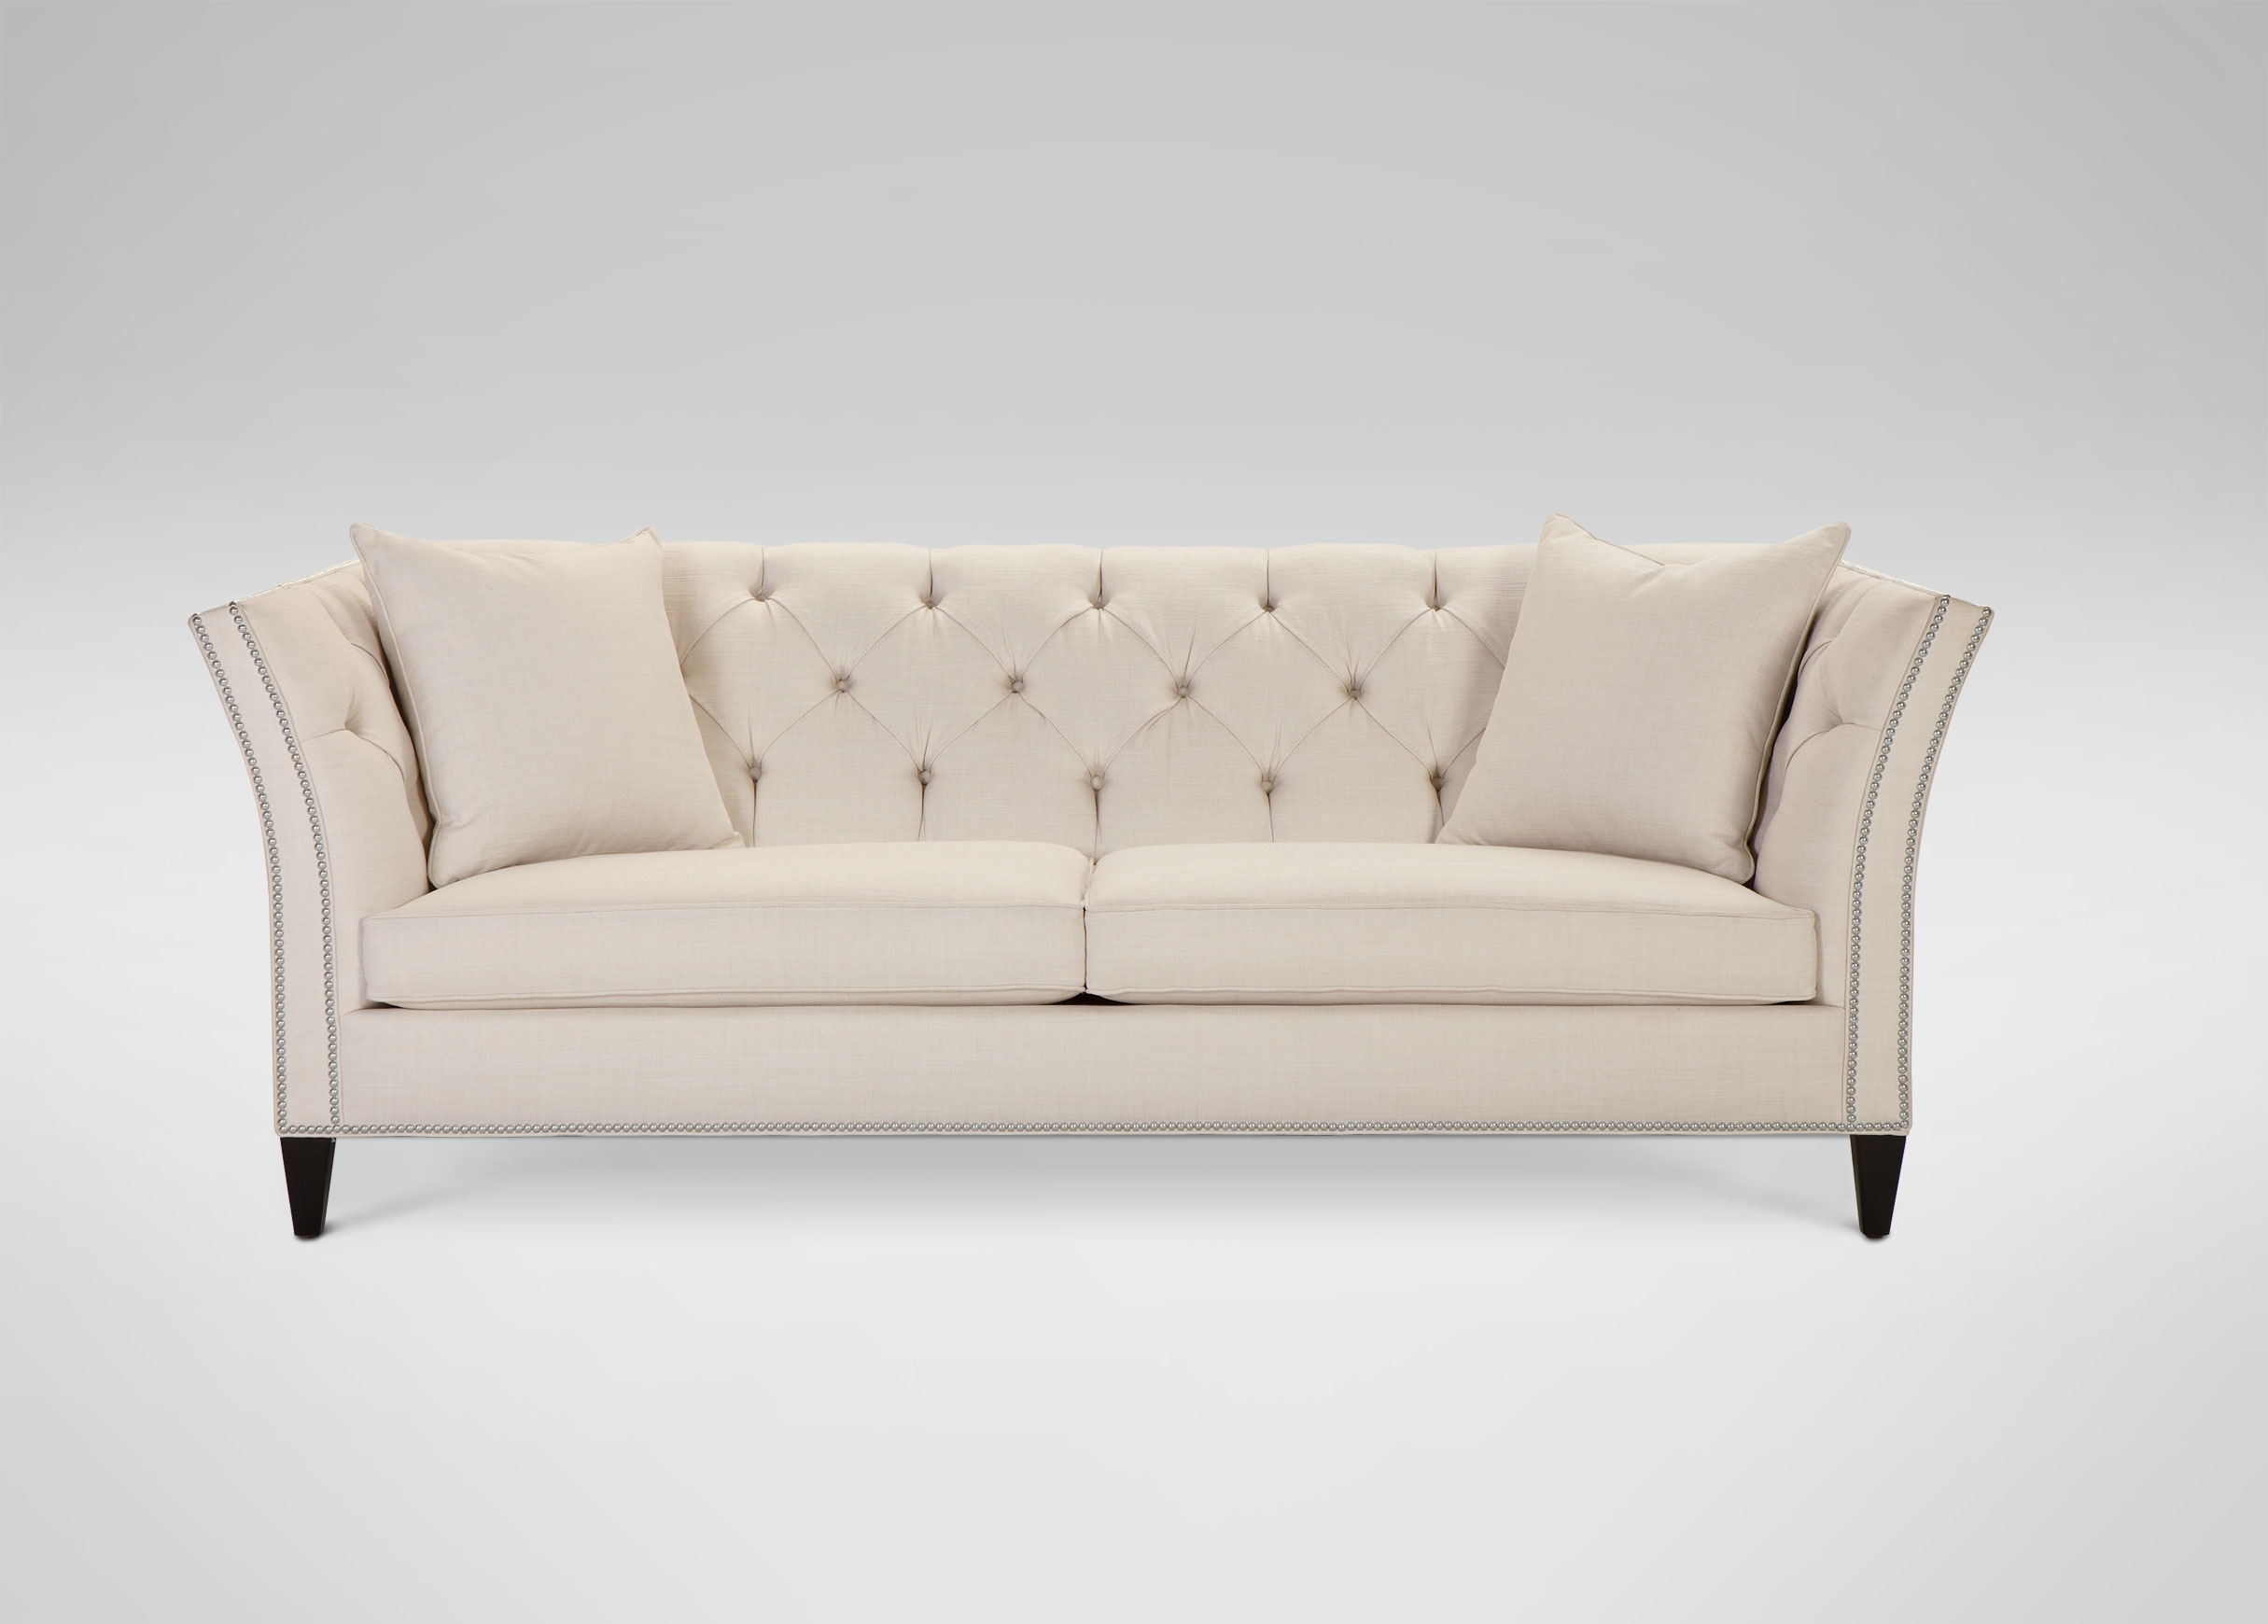 Shelton Sofa Sofas Loveseats Intended For Ethan Allen Sofas And Chairs (Image 14 of 15)